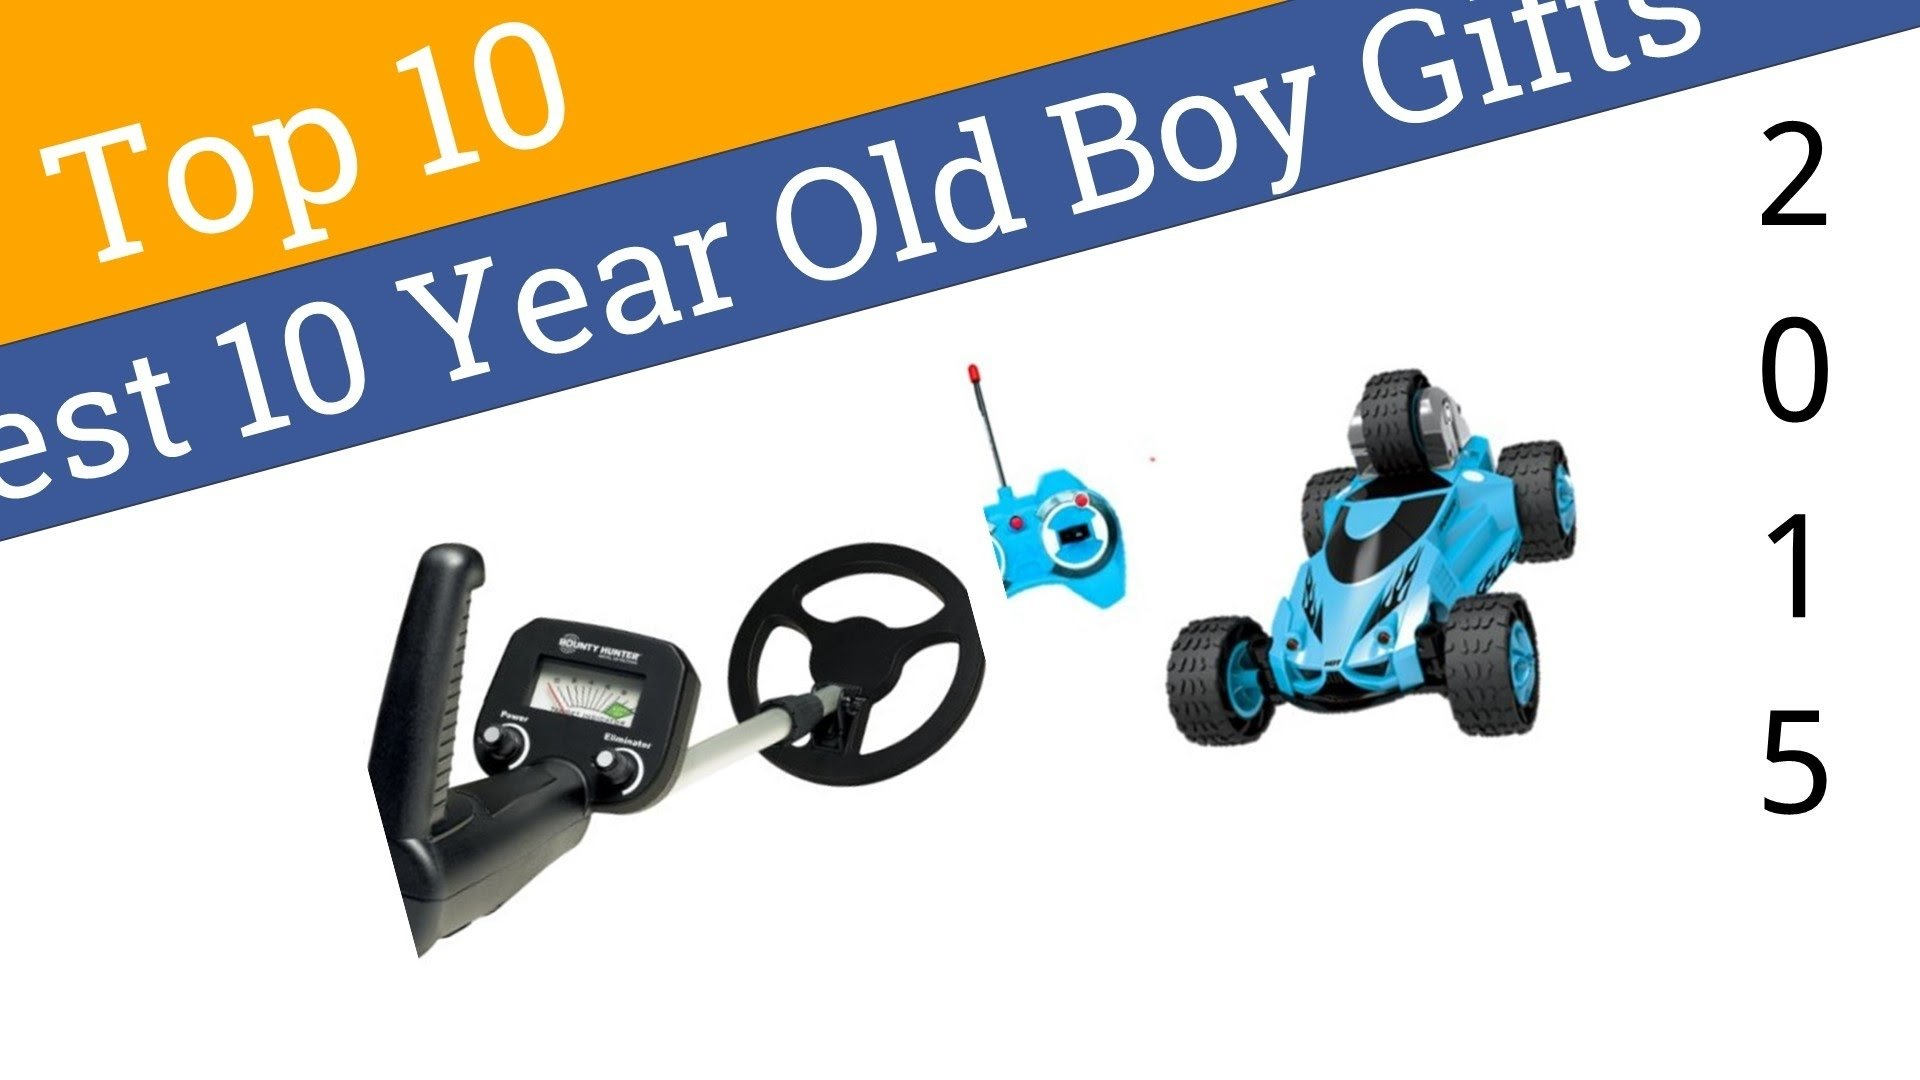 10 Ideal Christmas Ideas For 10 Year Old Boy 10 best 10 year old boy gifts 2015 youtube 8 2021